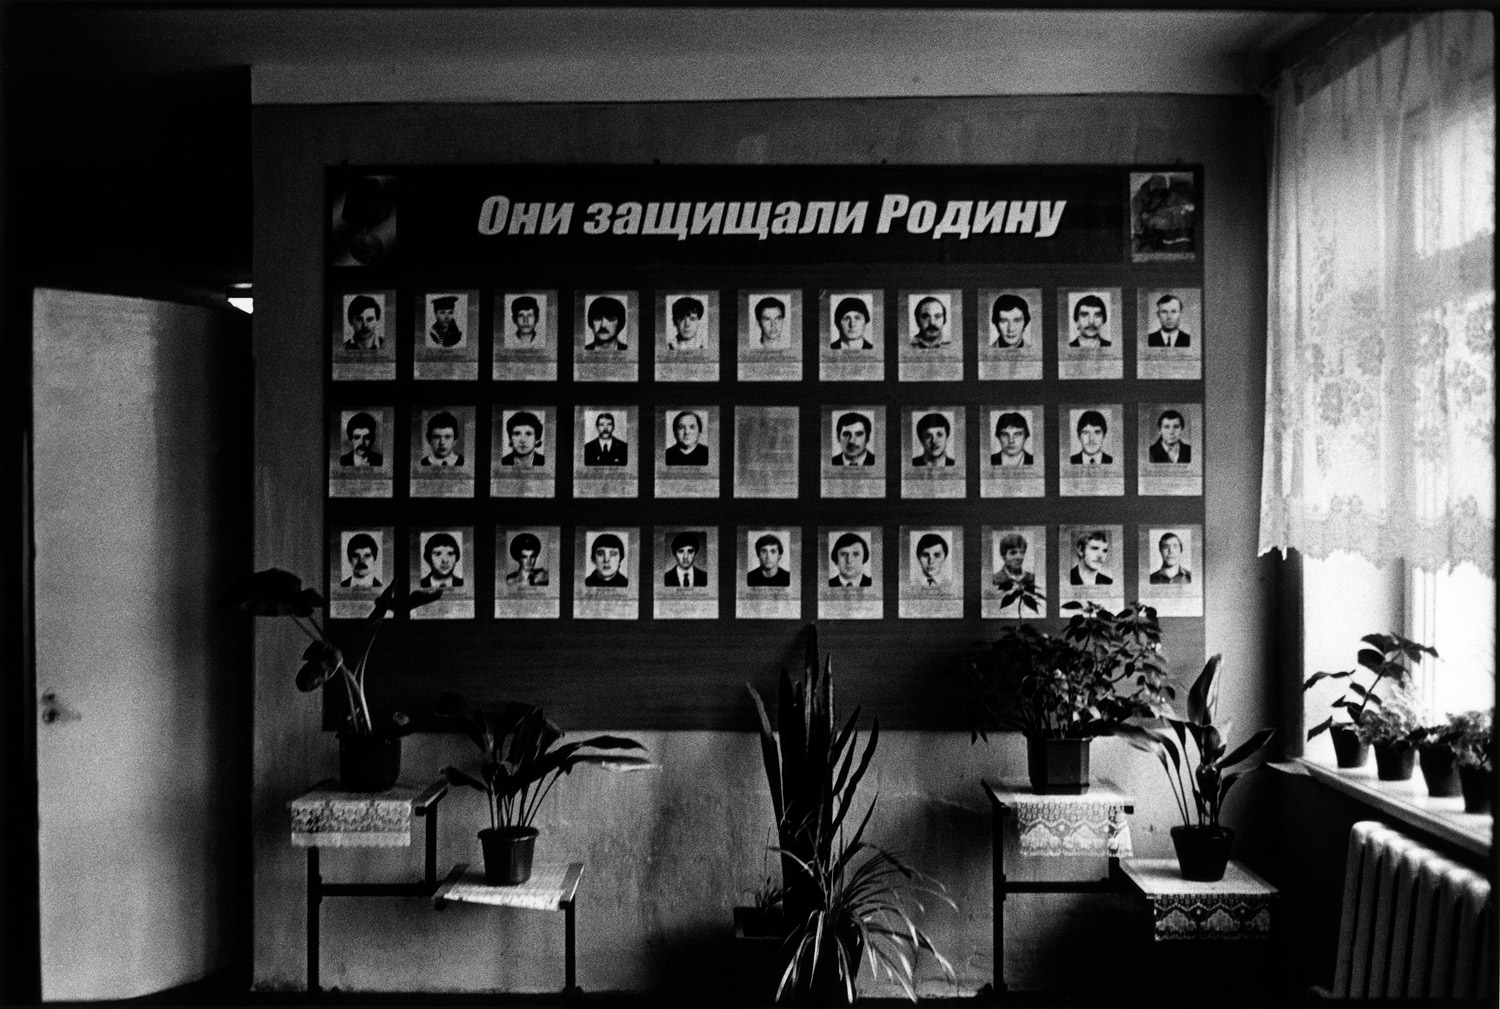 Portraits of the soldiers who were born in the village and died in the war Transnistria fought in support of its independence. The slogan reads,  They defended the Motherland.